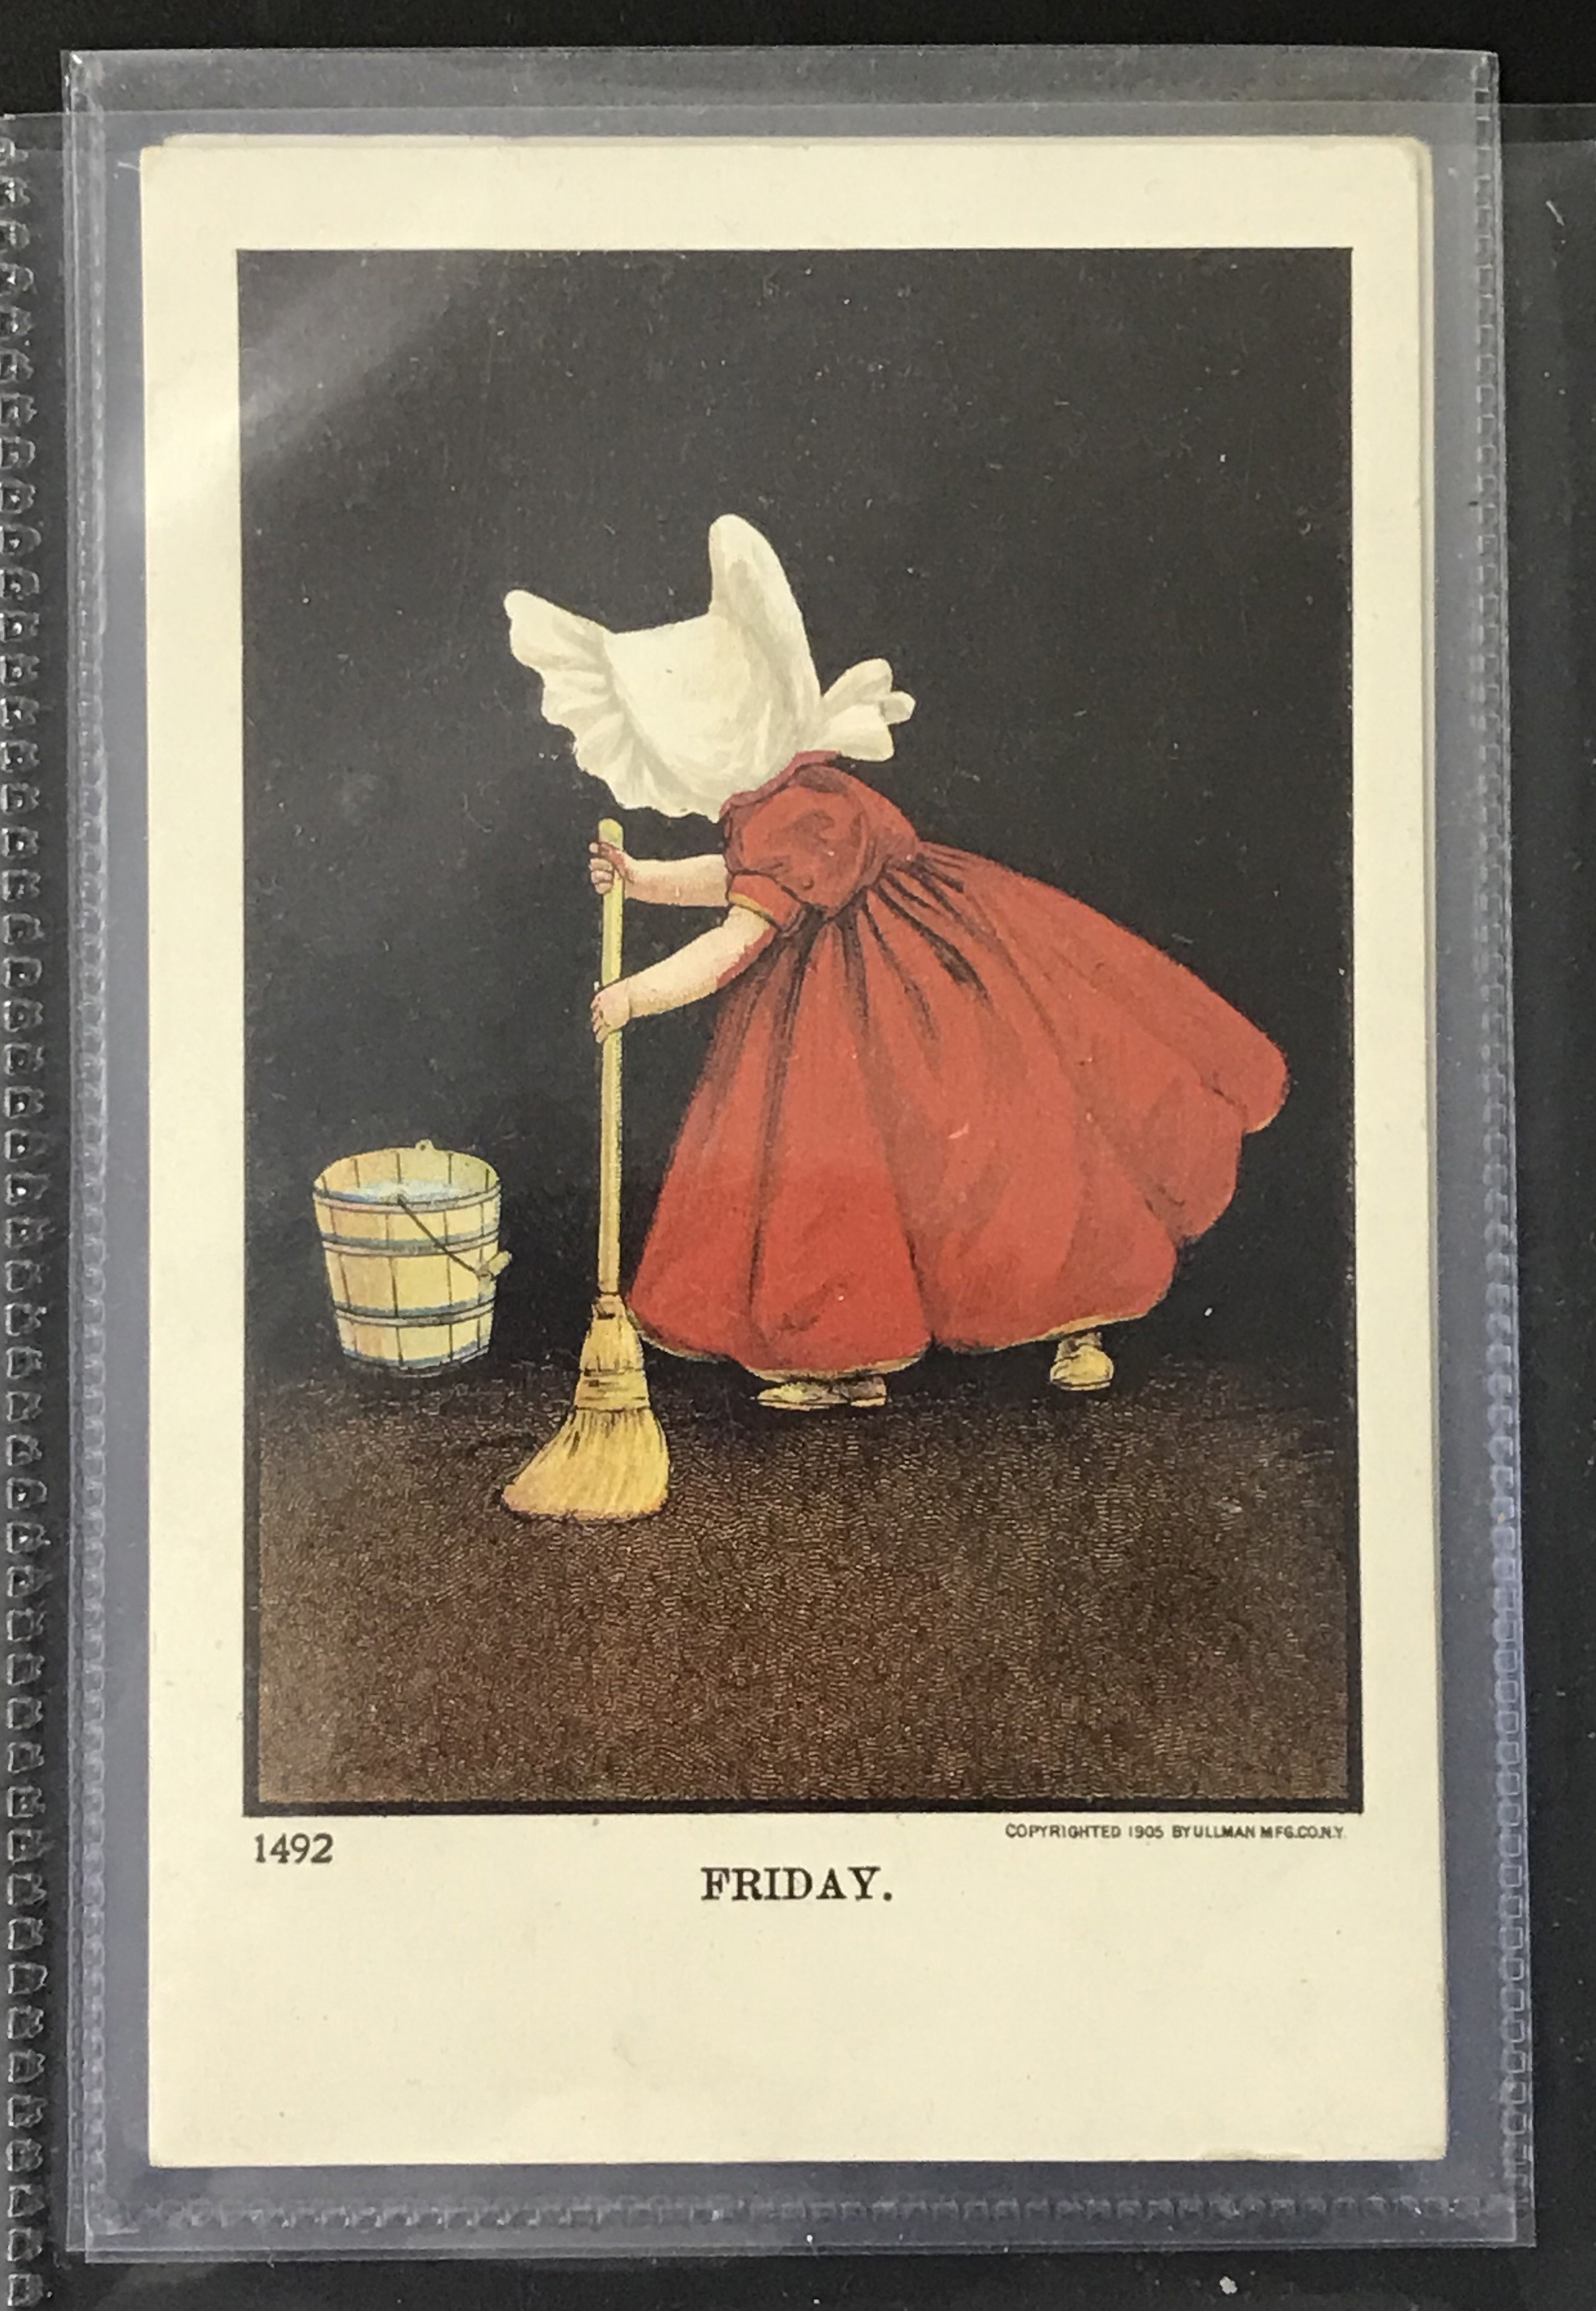 Ullman Manufacturing Co. Postcards - Complete set of Sunbonnet Baby Days - Image 8 of 11